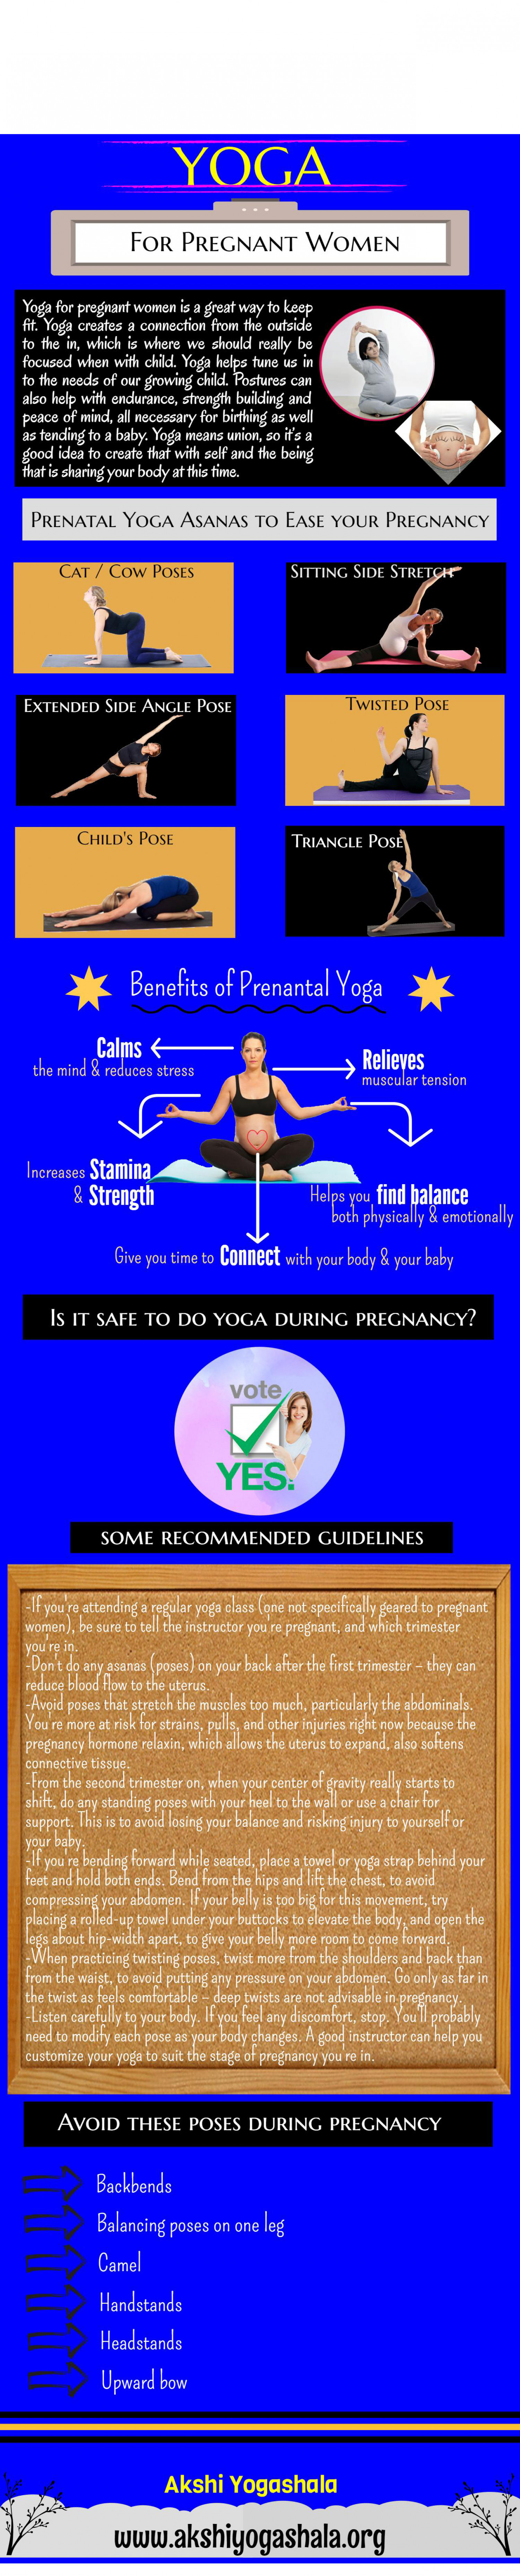 Yoga For Pregnant Women Infographic